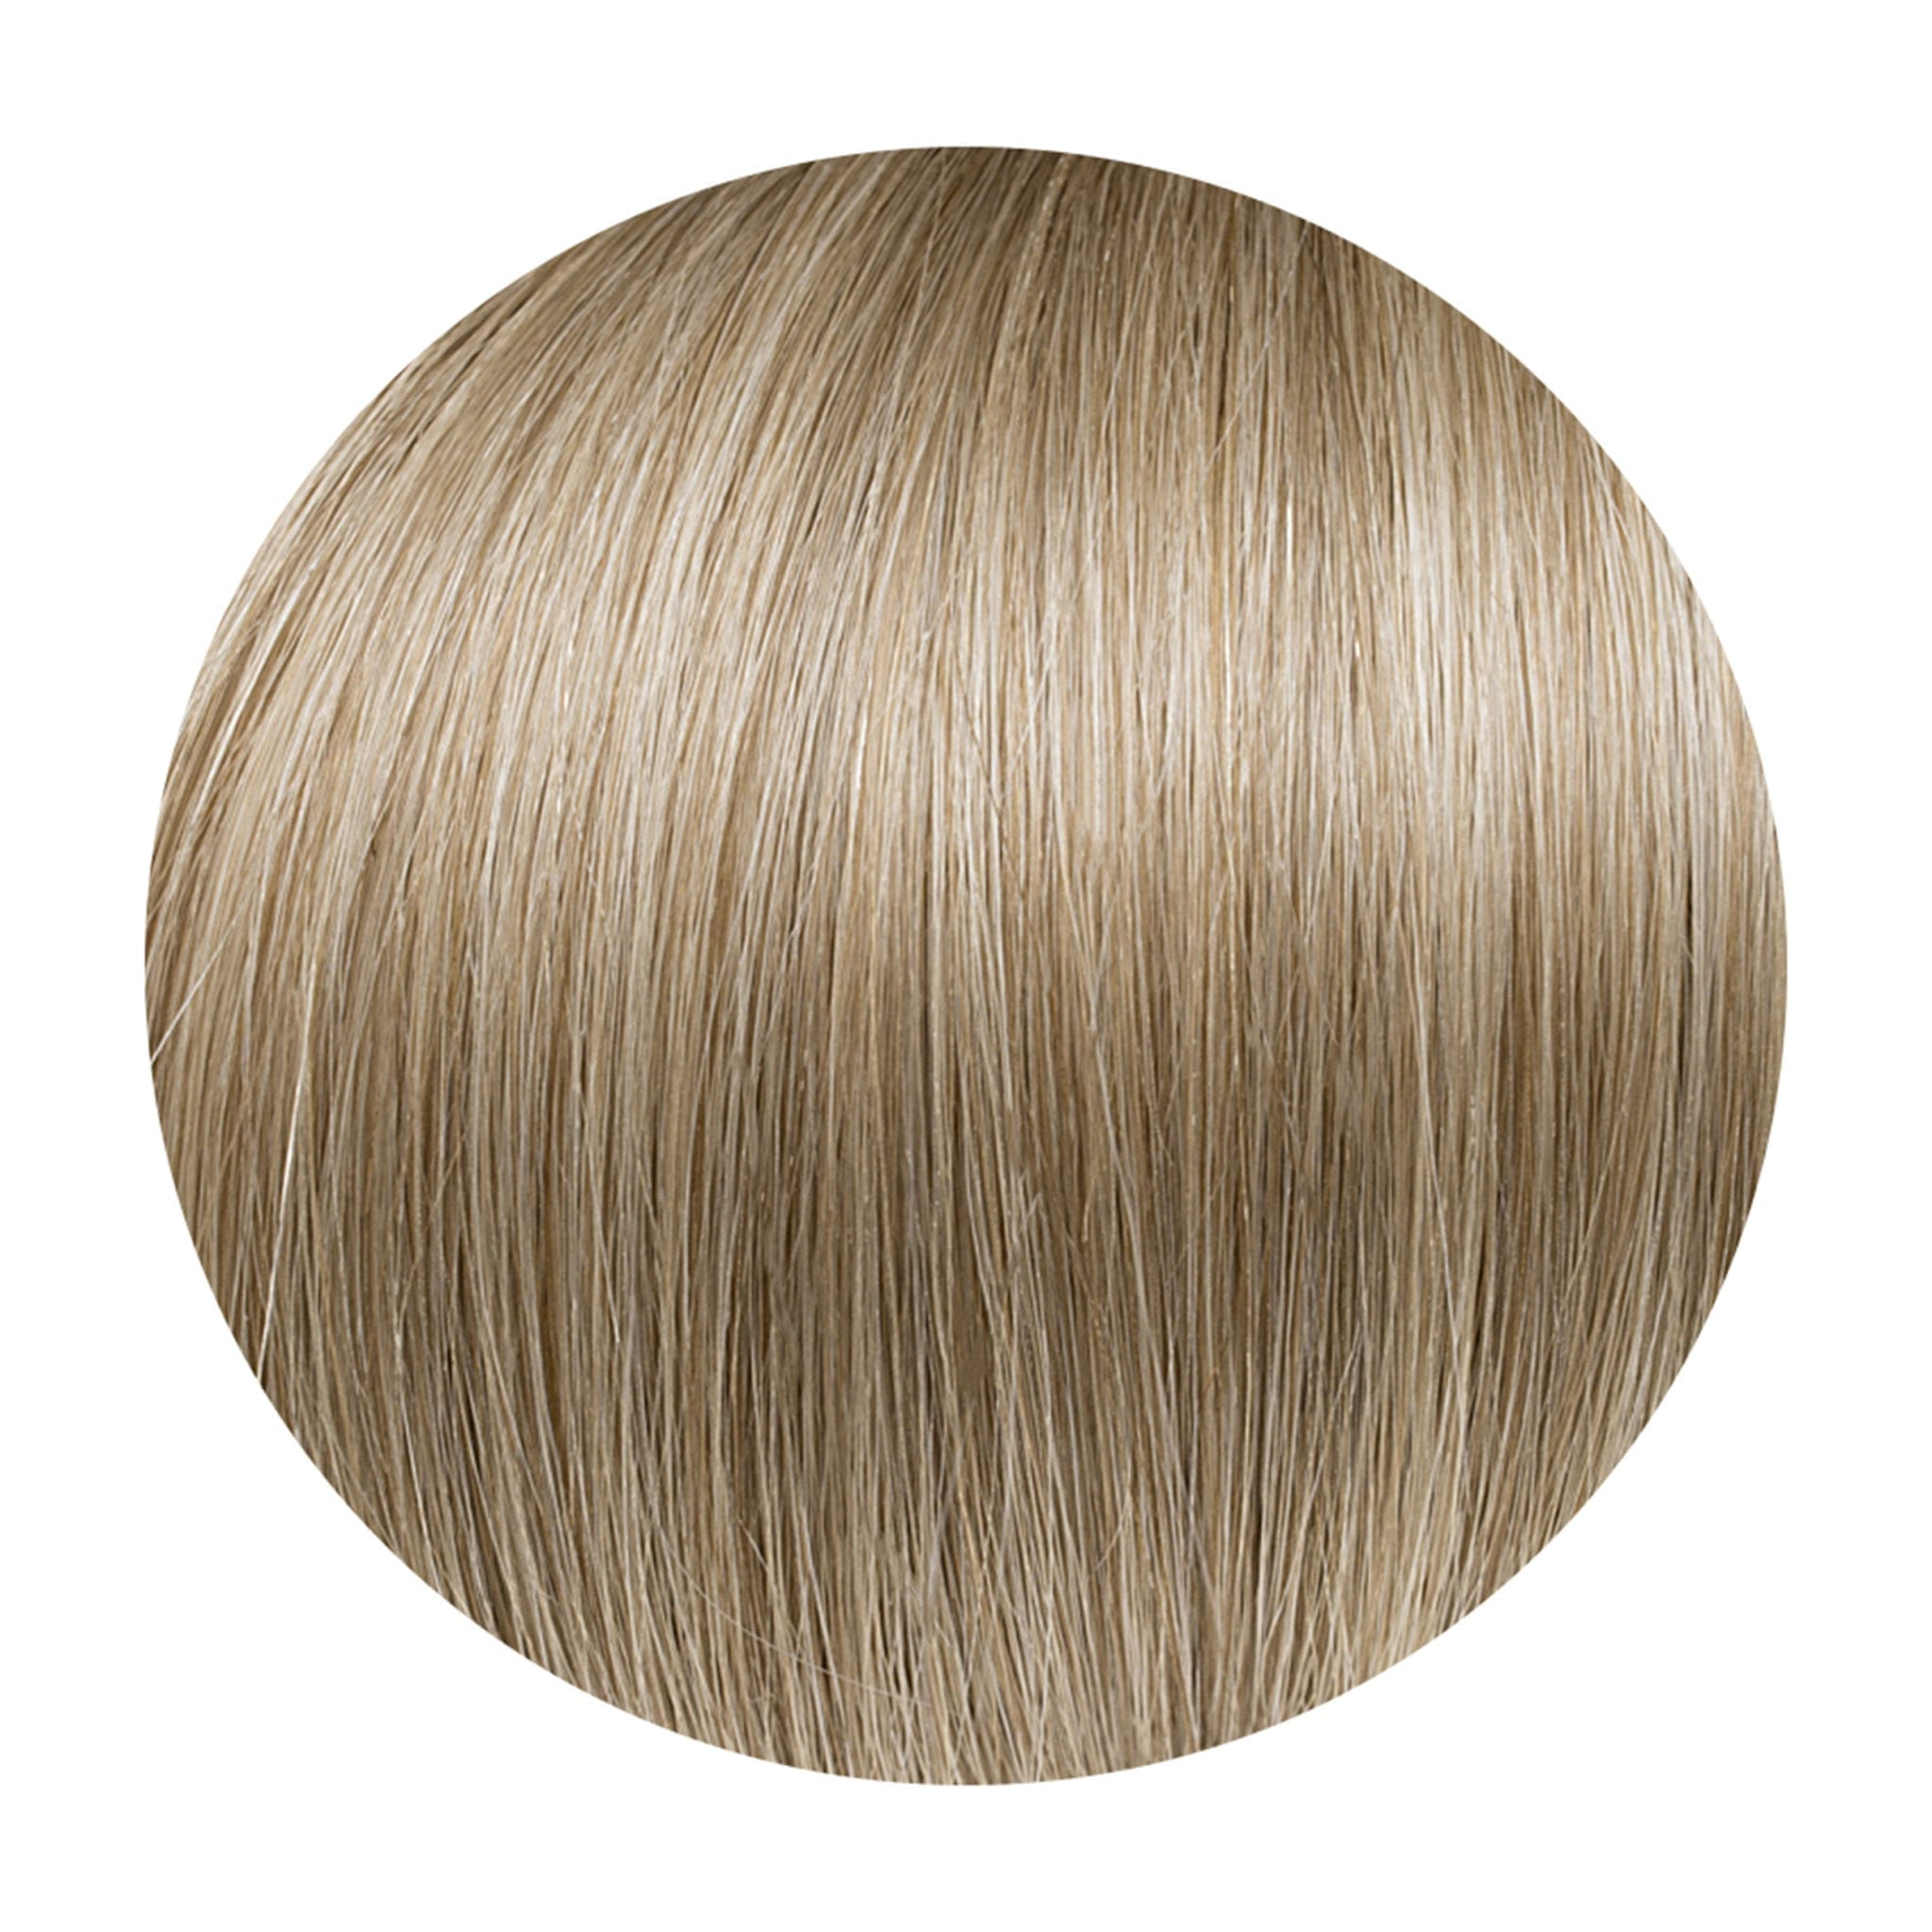 Coffee N Cream Balayage Colour I Tip 21 22 Inches Seamless1